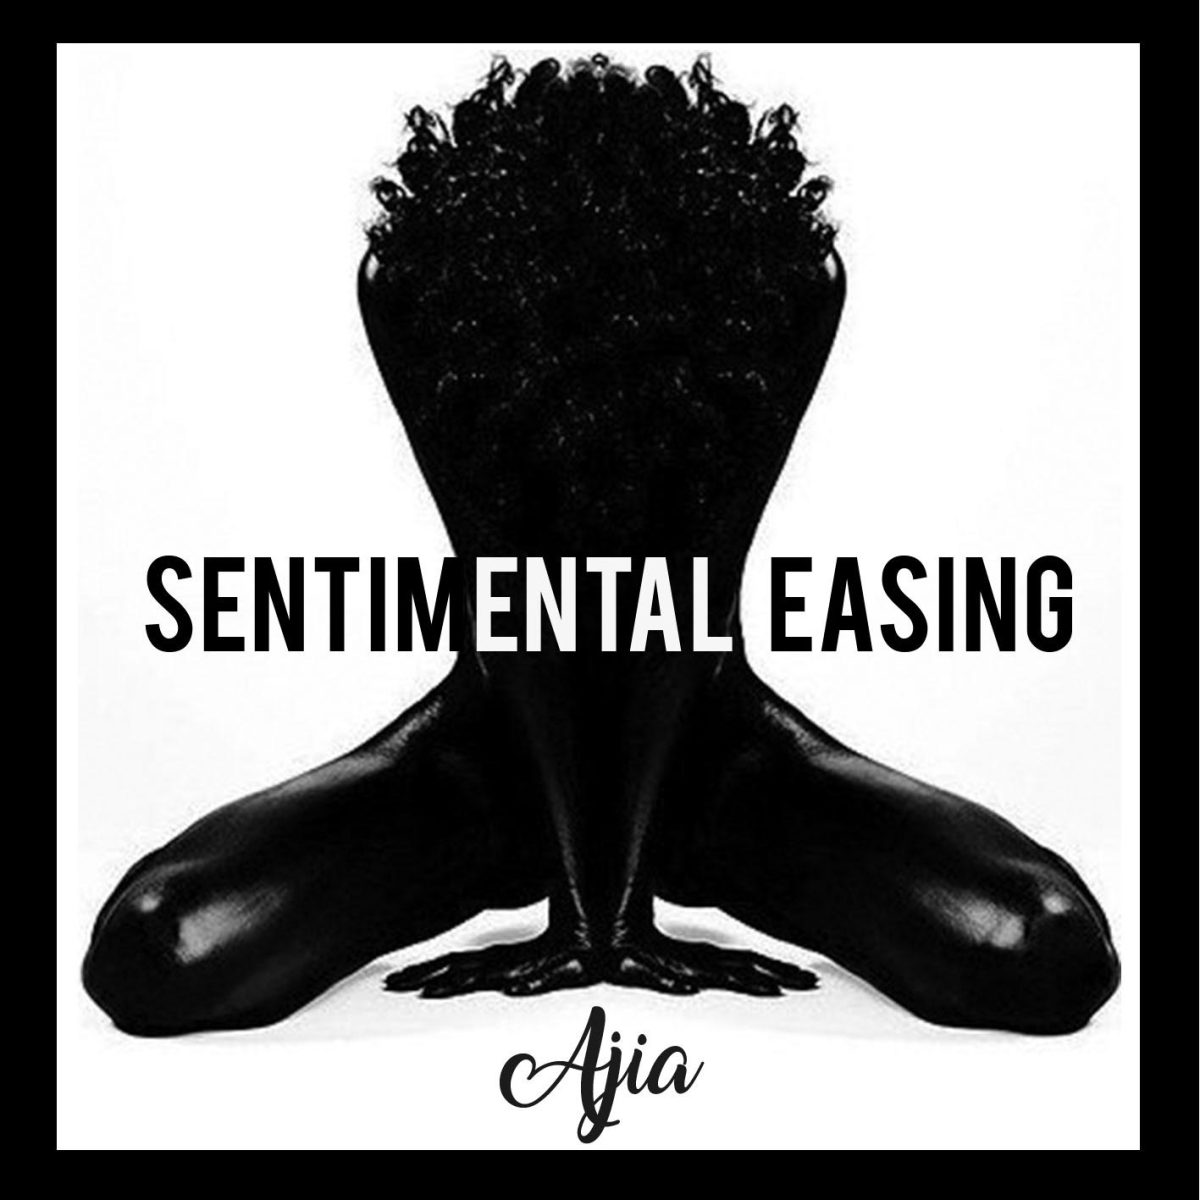 AJIA – All So Poetic, Neo Soul Music Never Been This Soothing